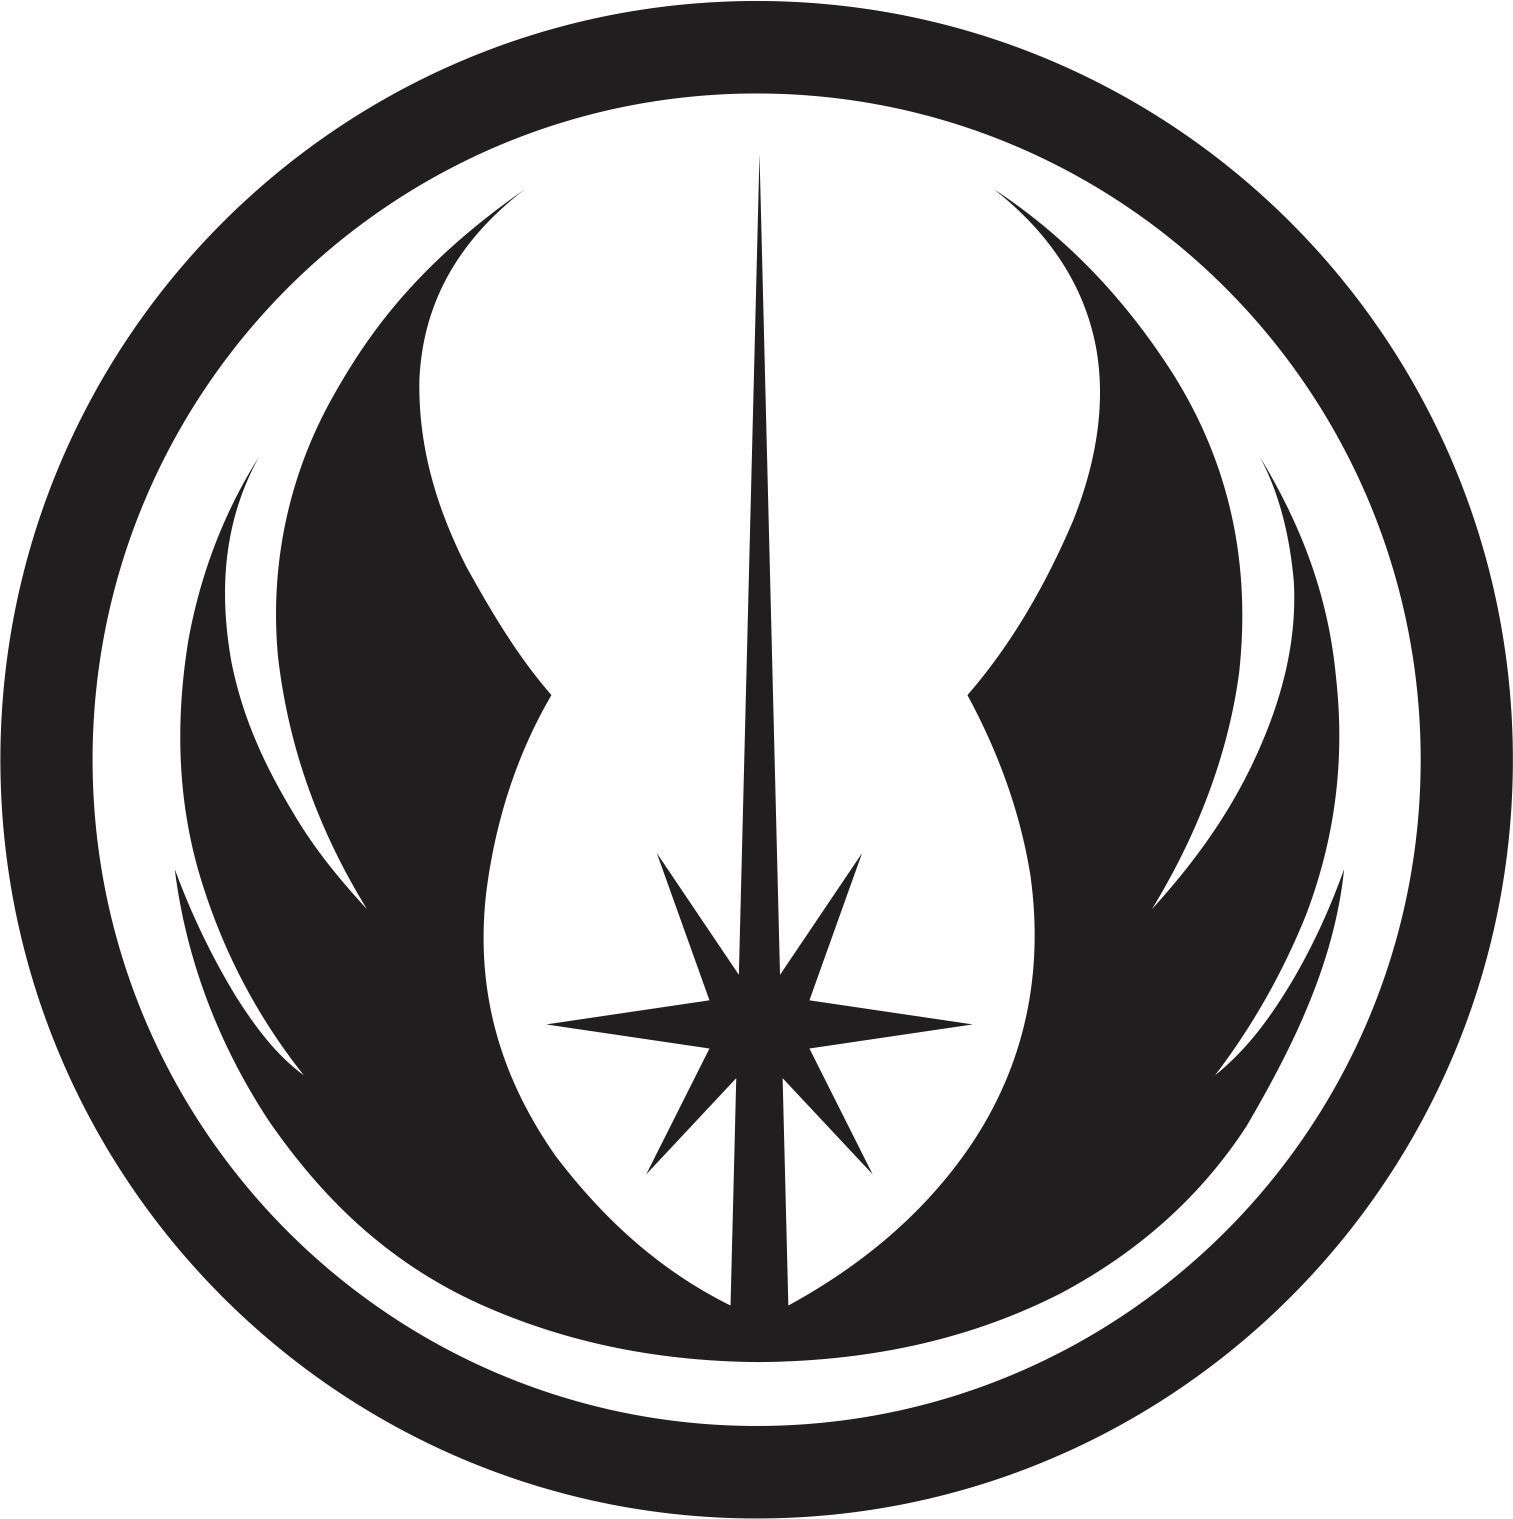 Jedi symbol visit my website to order one vinyl decals jedi symbol biocorpaavc